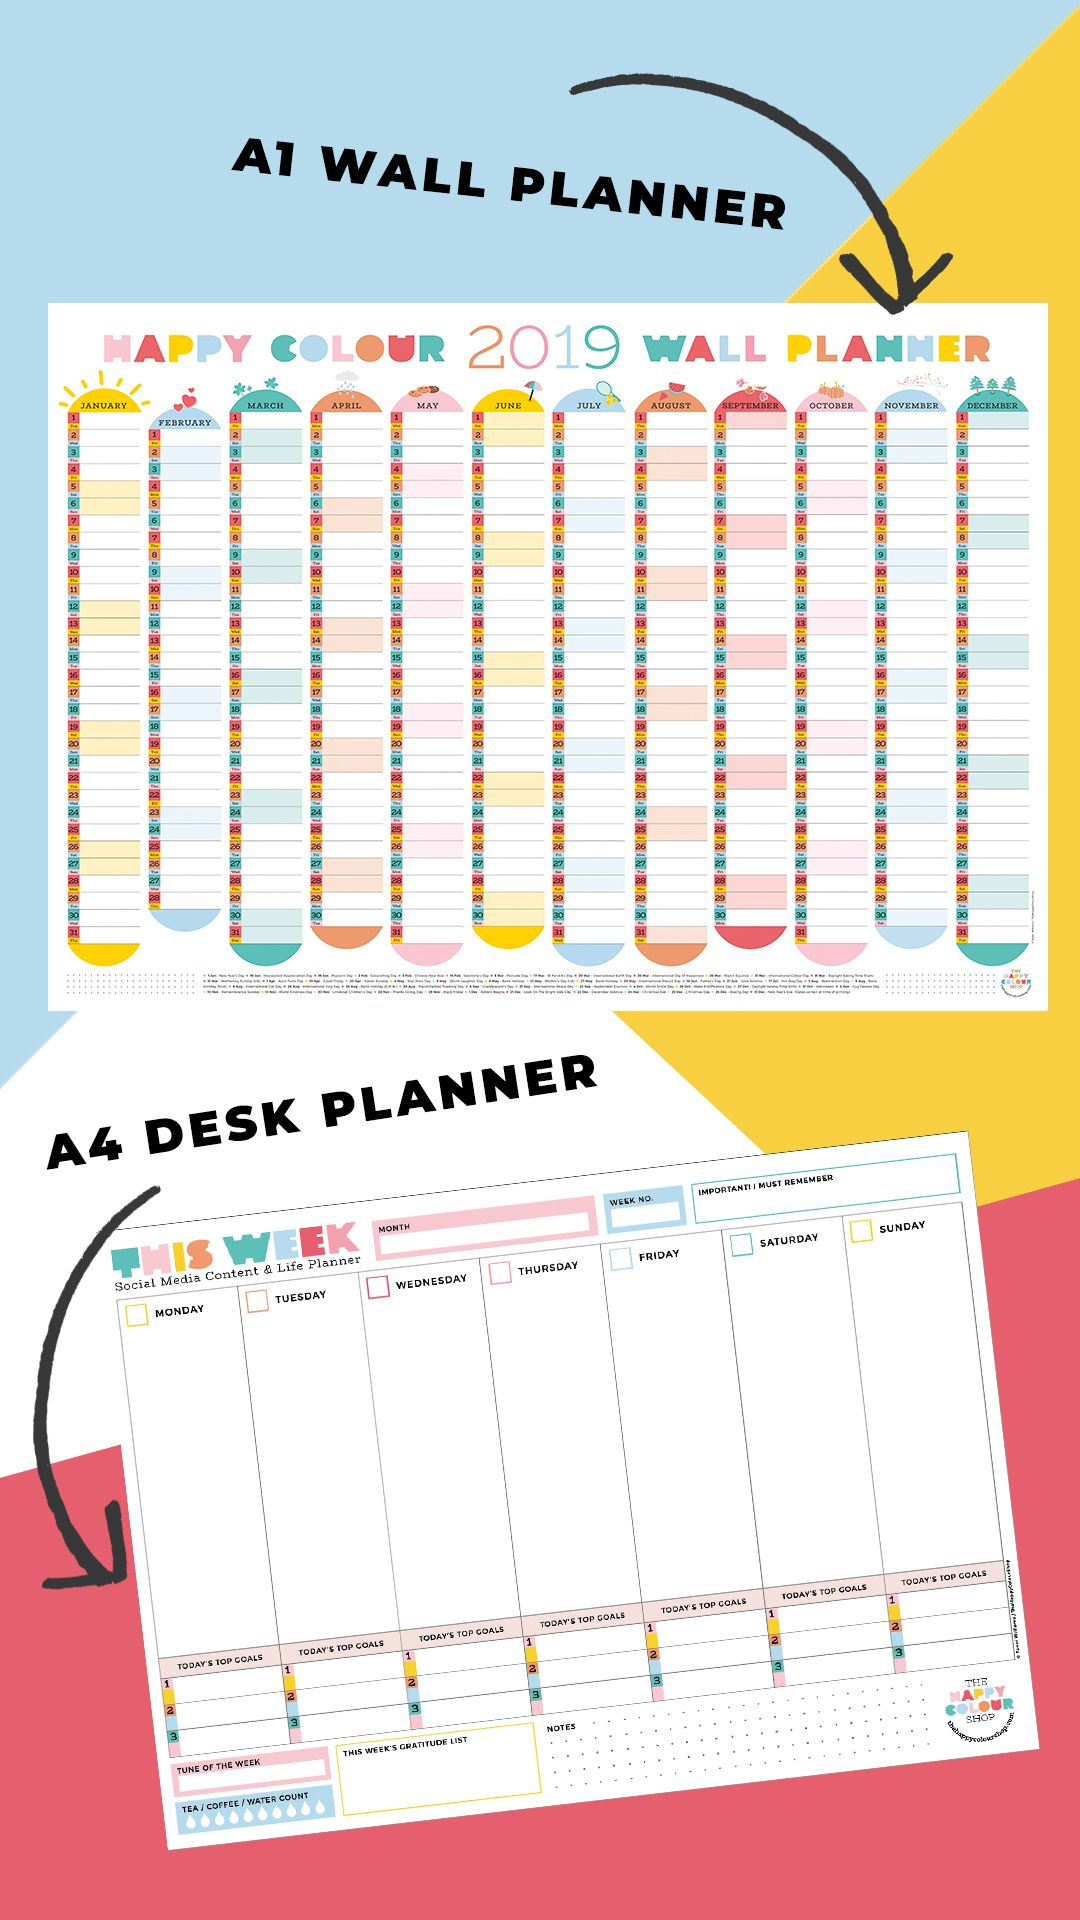 2019 Colourful Wall Planner And Paper Stationery To Brighten Up Your